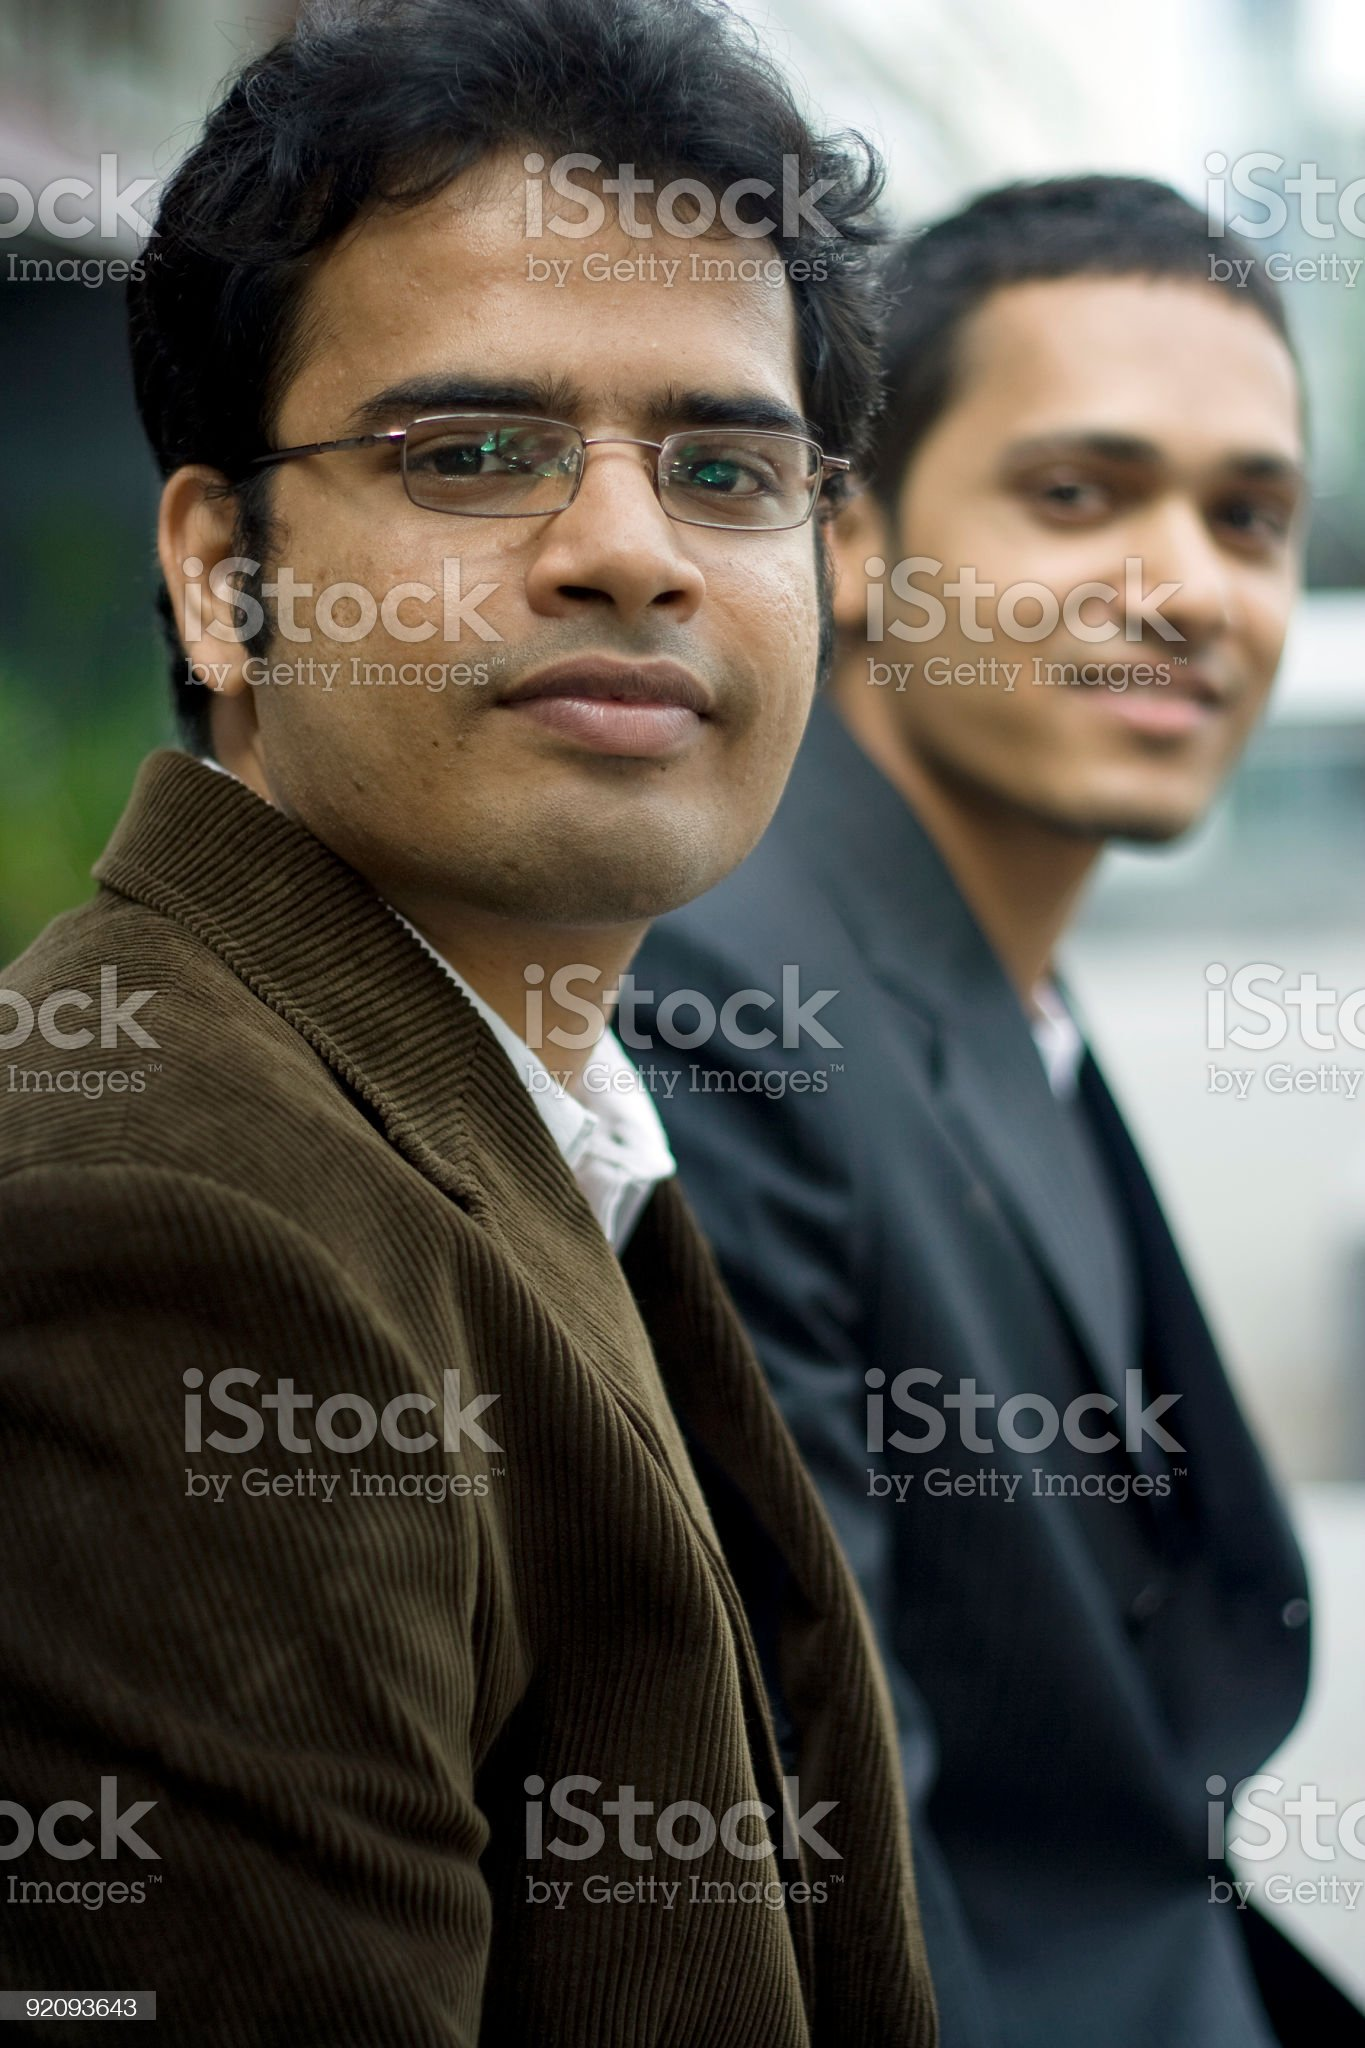 Smart Indian Business team royalty-free stock photo